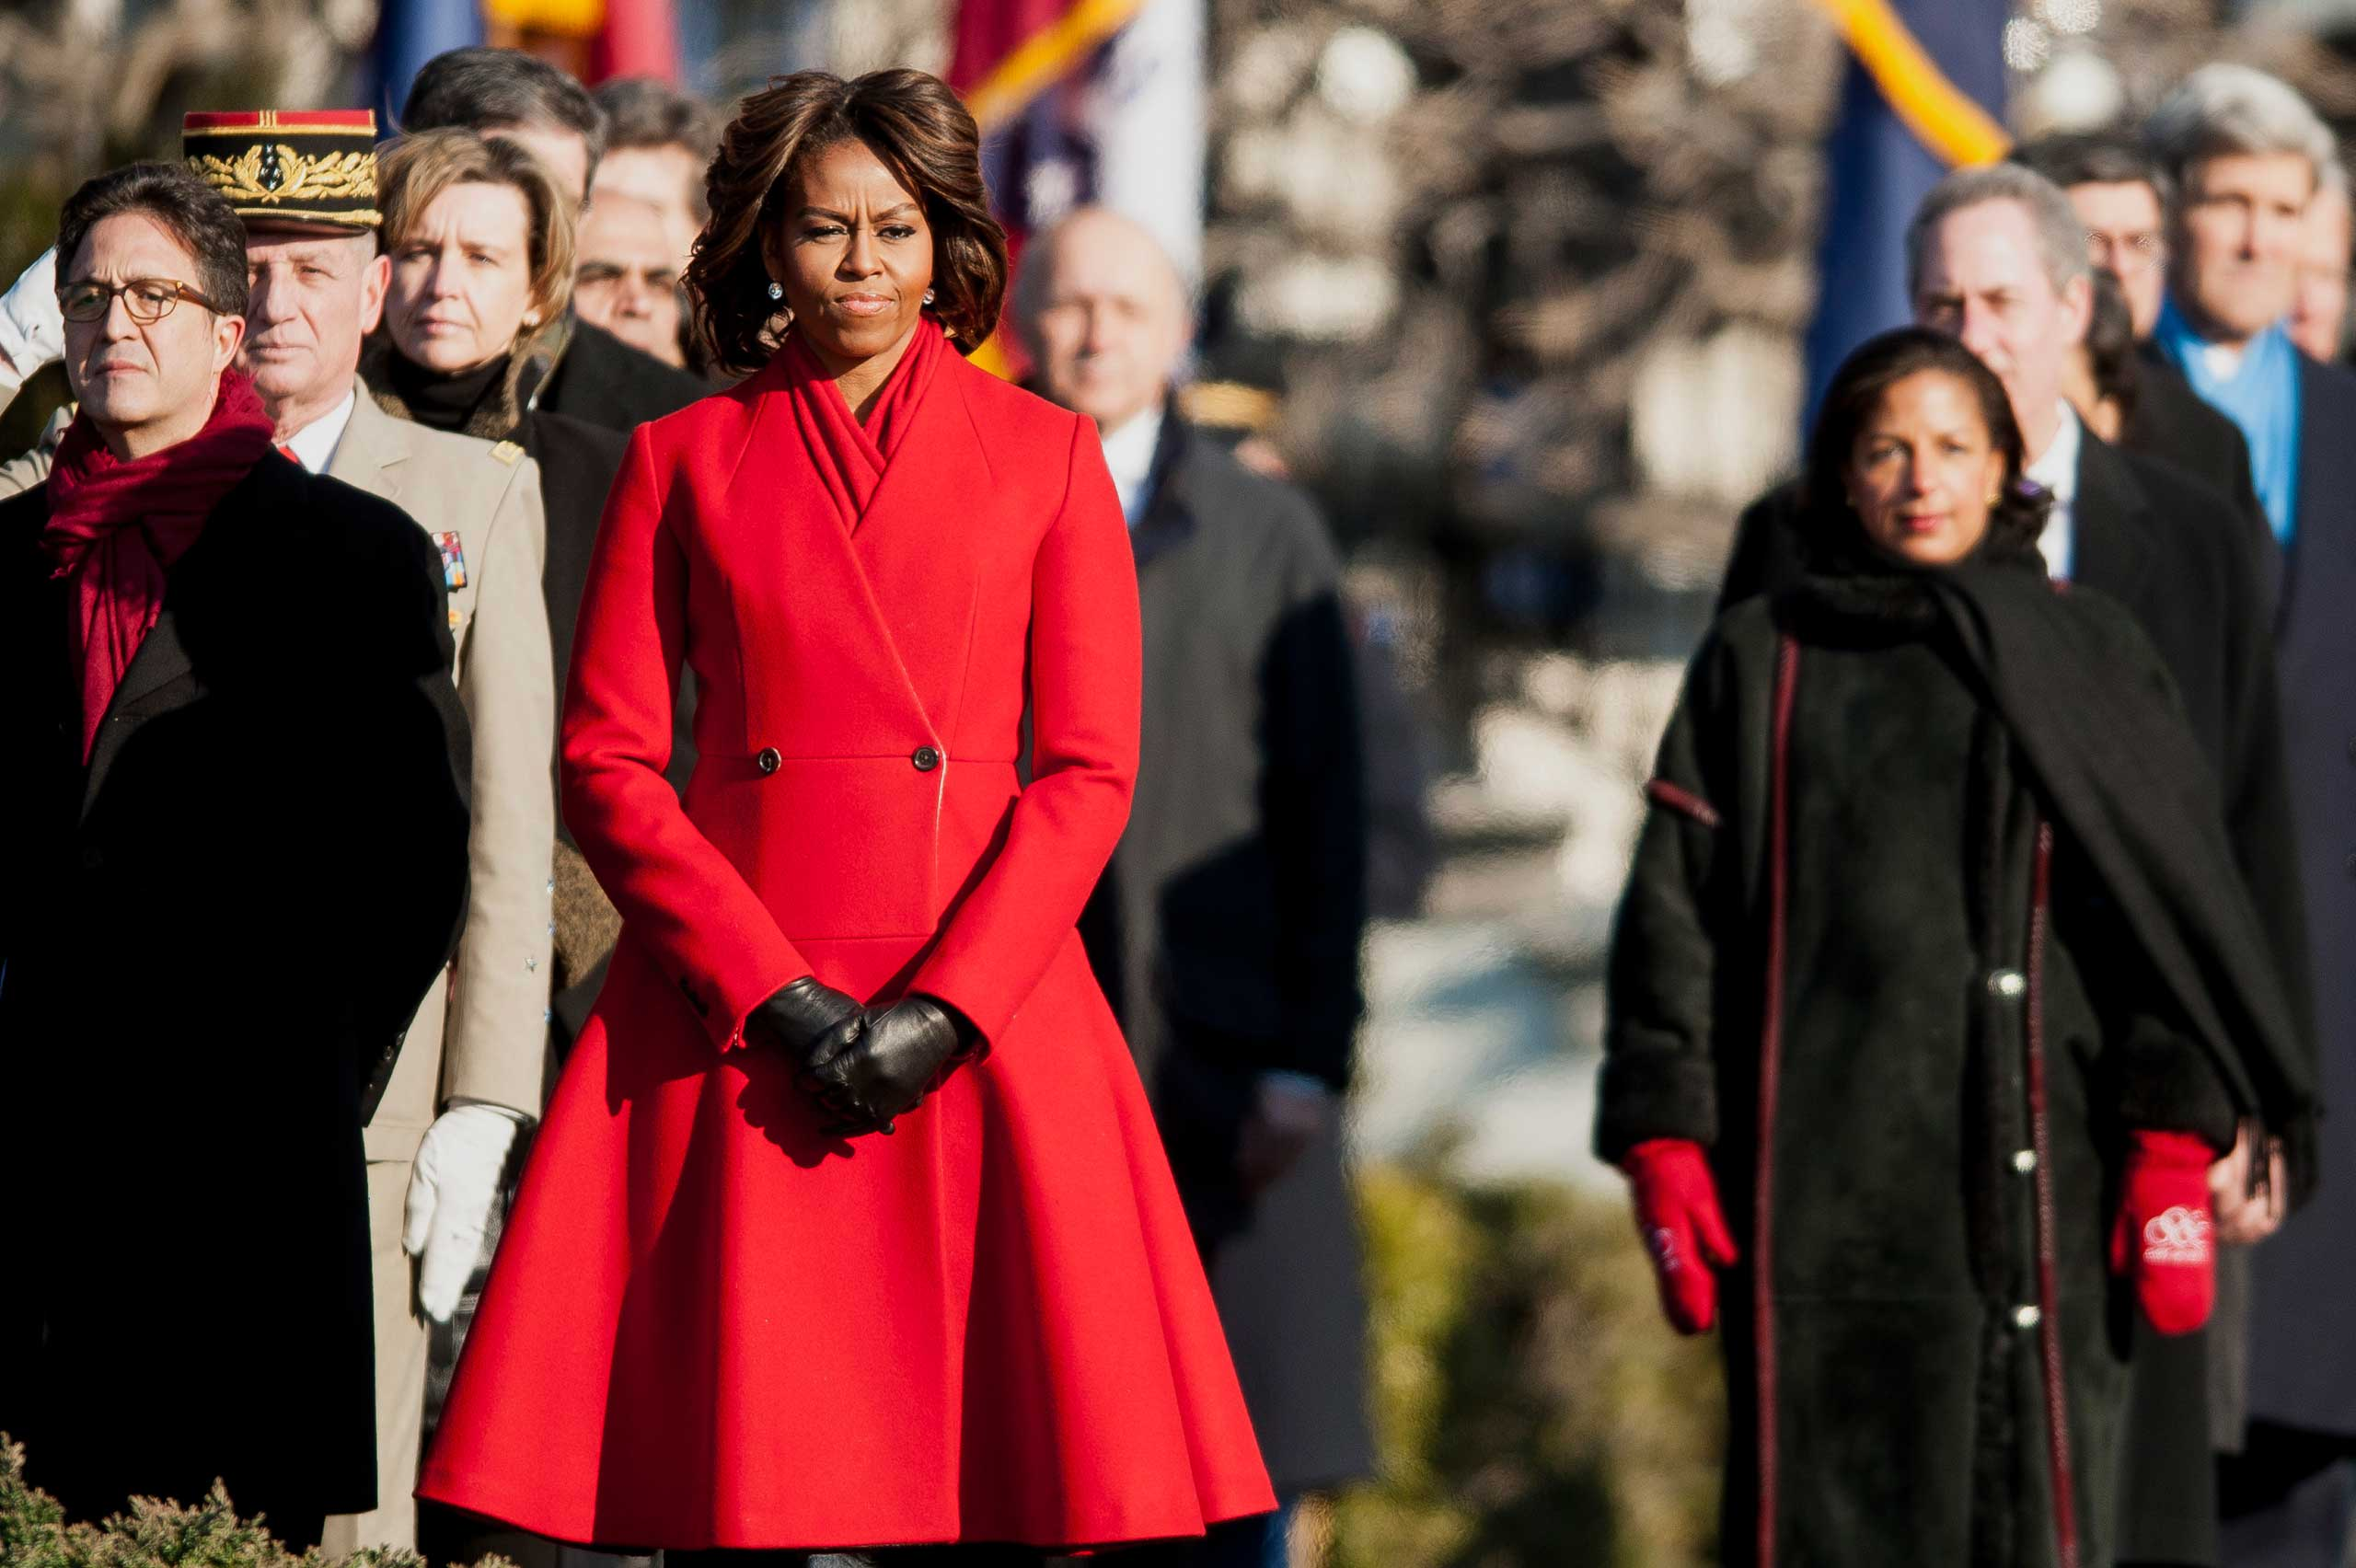 Never one to shy away from color, Obama donned a bold red coat for a visit from French President Francois Hollande in February.